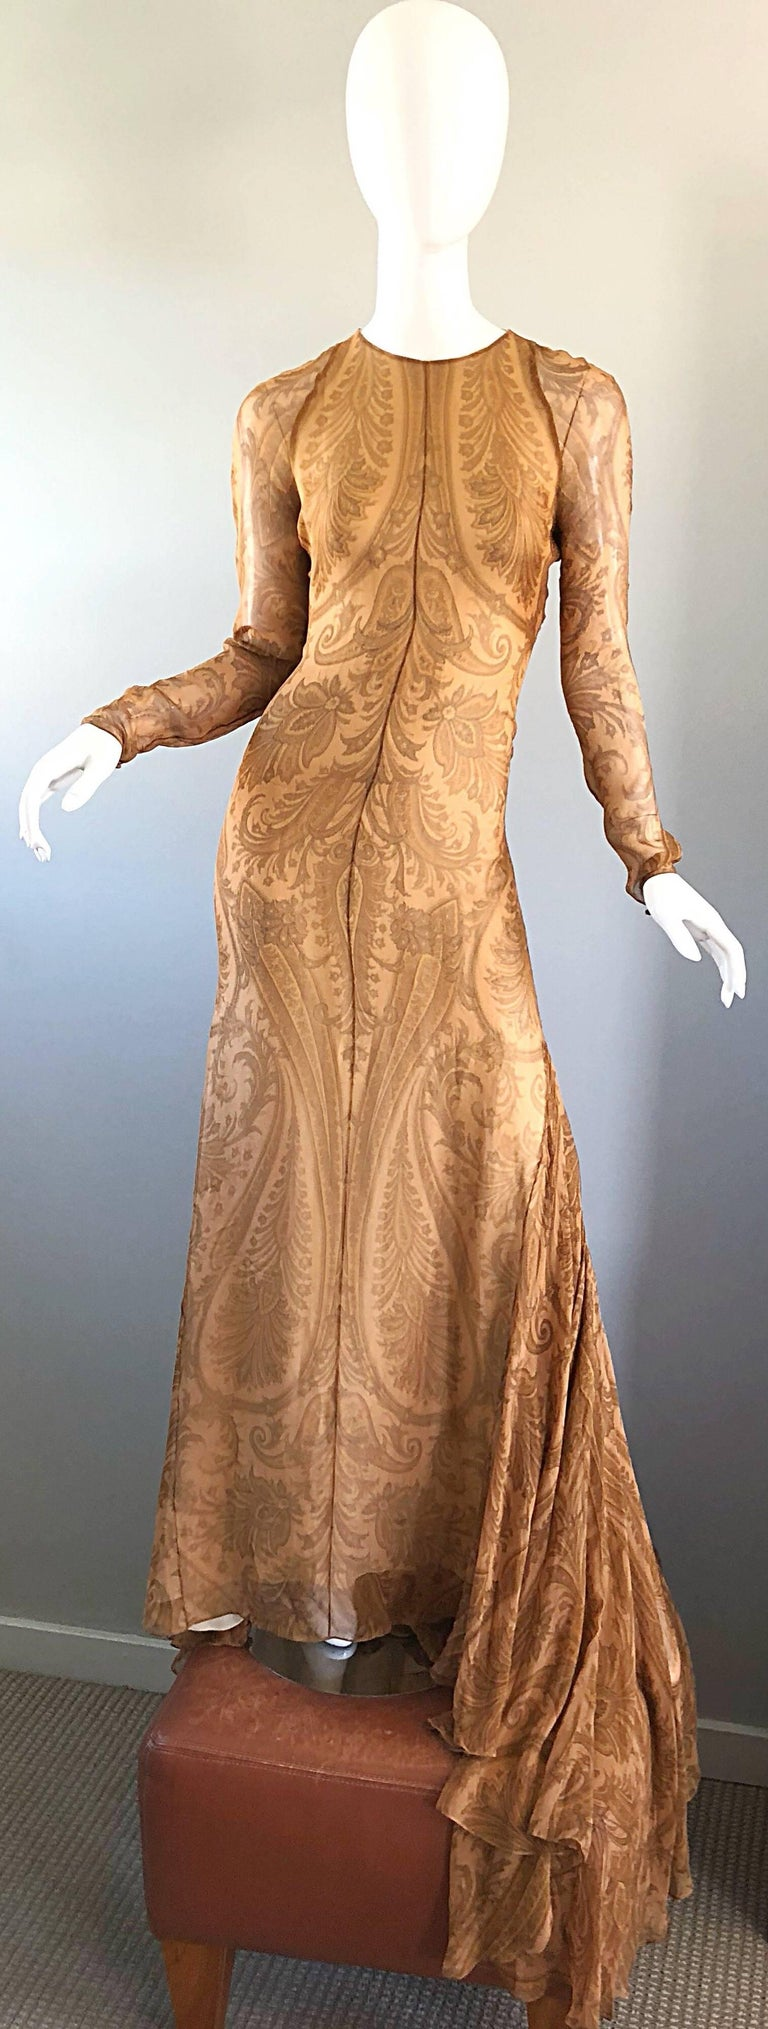 Sensational 1990s Bill Blass Couture Nude Silk Chiffon Paisley Vintage 90s Gown  For Sale 14